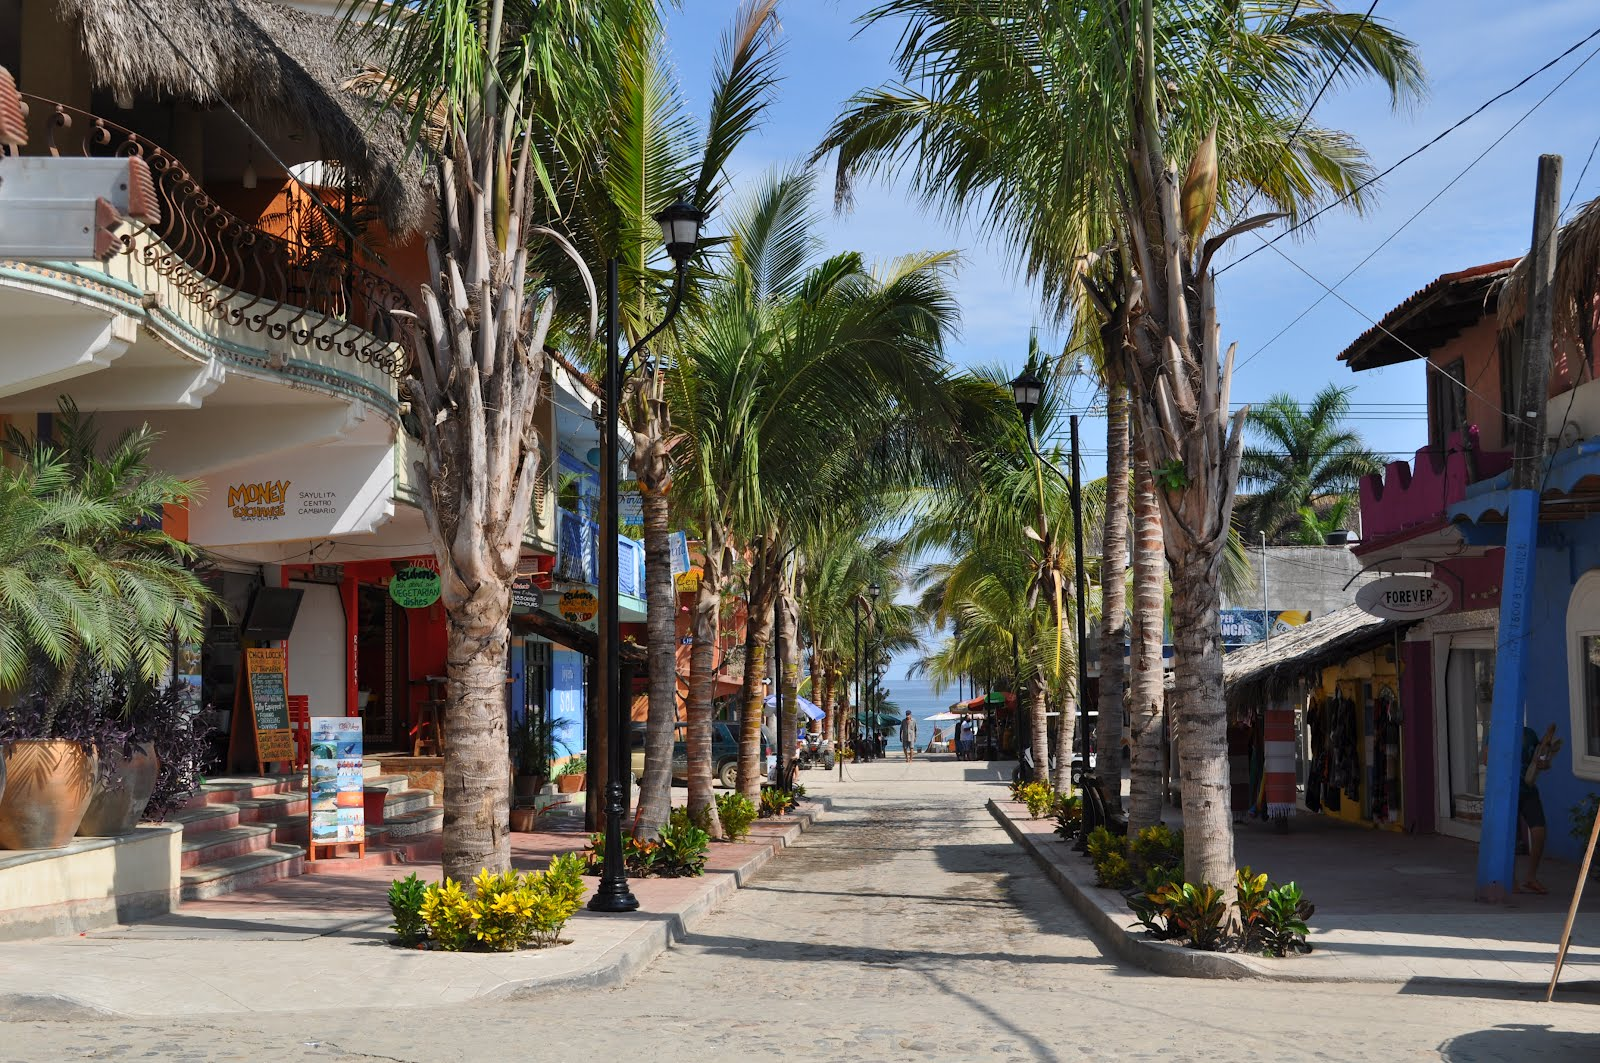 The casual beach village of Sayulita is a popular destination for surfers